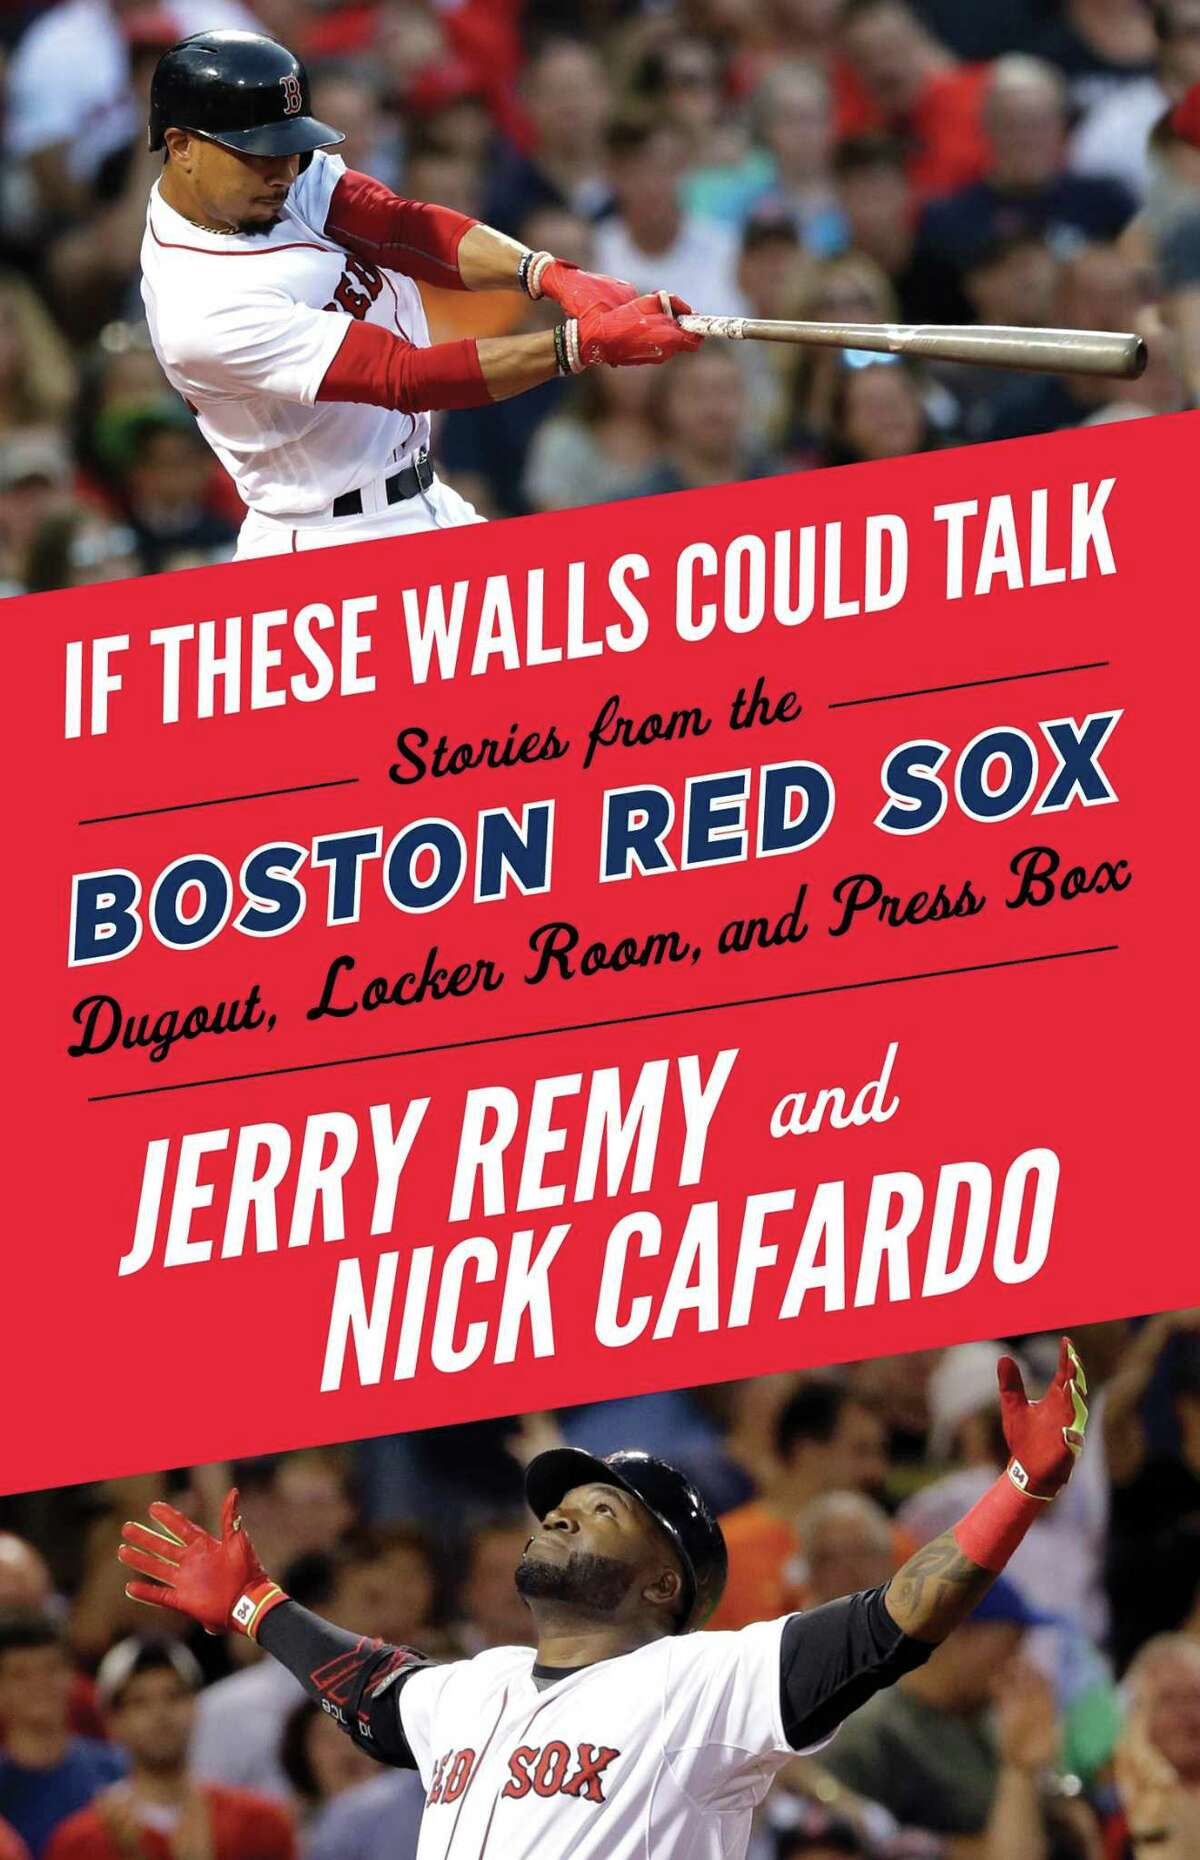 Boston Red Sox broadcaster Jerry Remy is author of